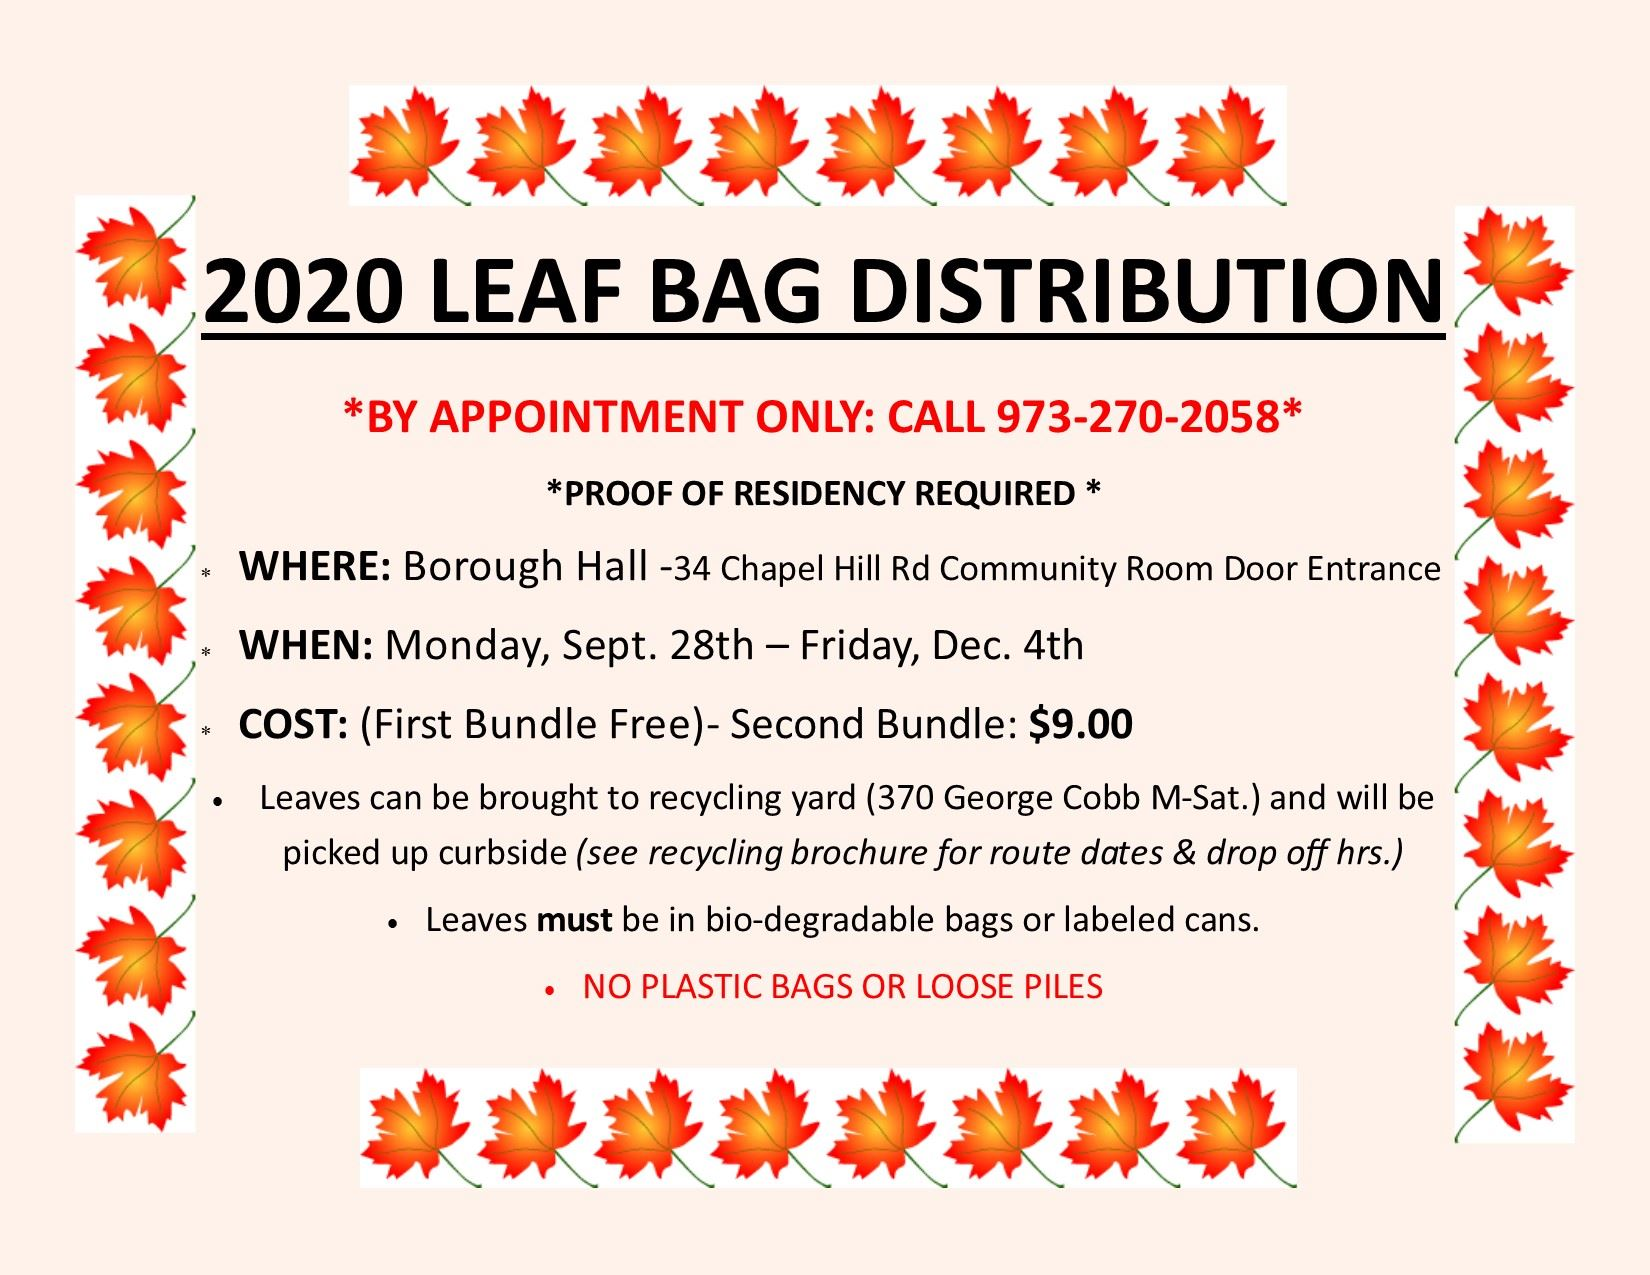 2020 LEAF BAG COLLECTION FLYER